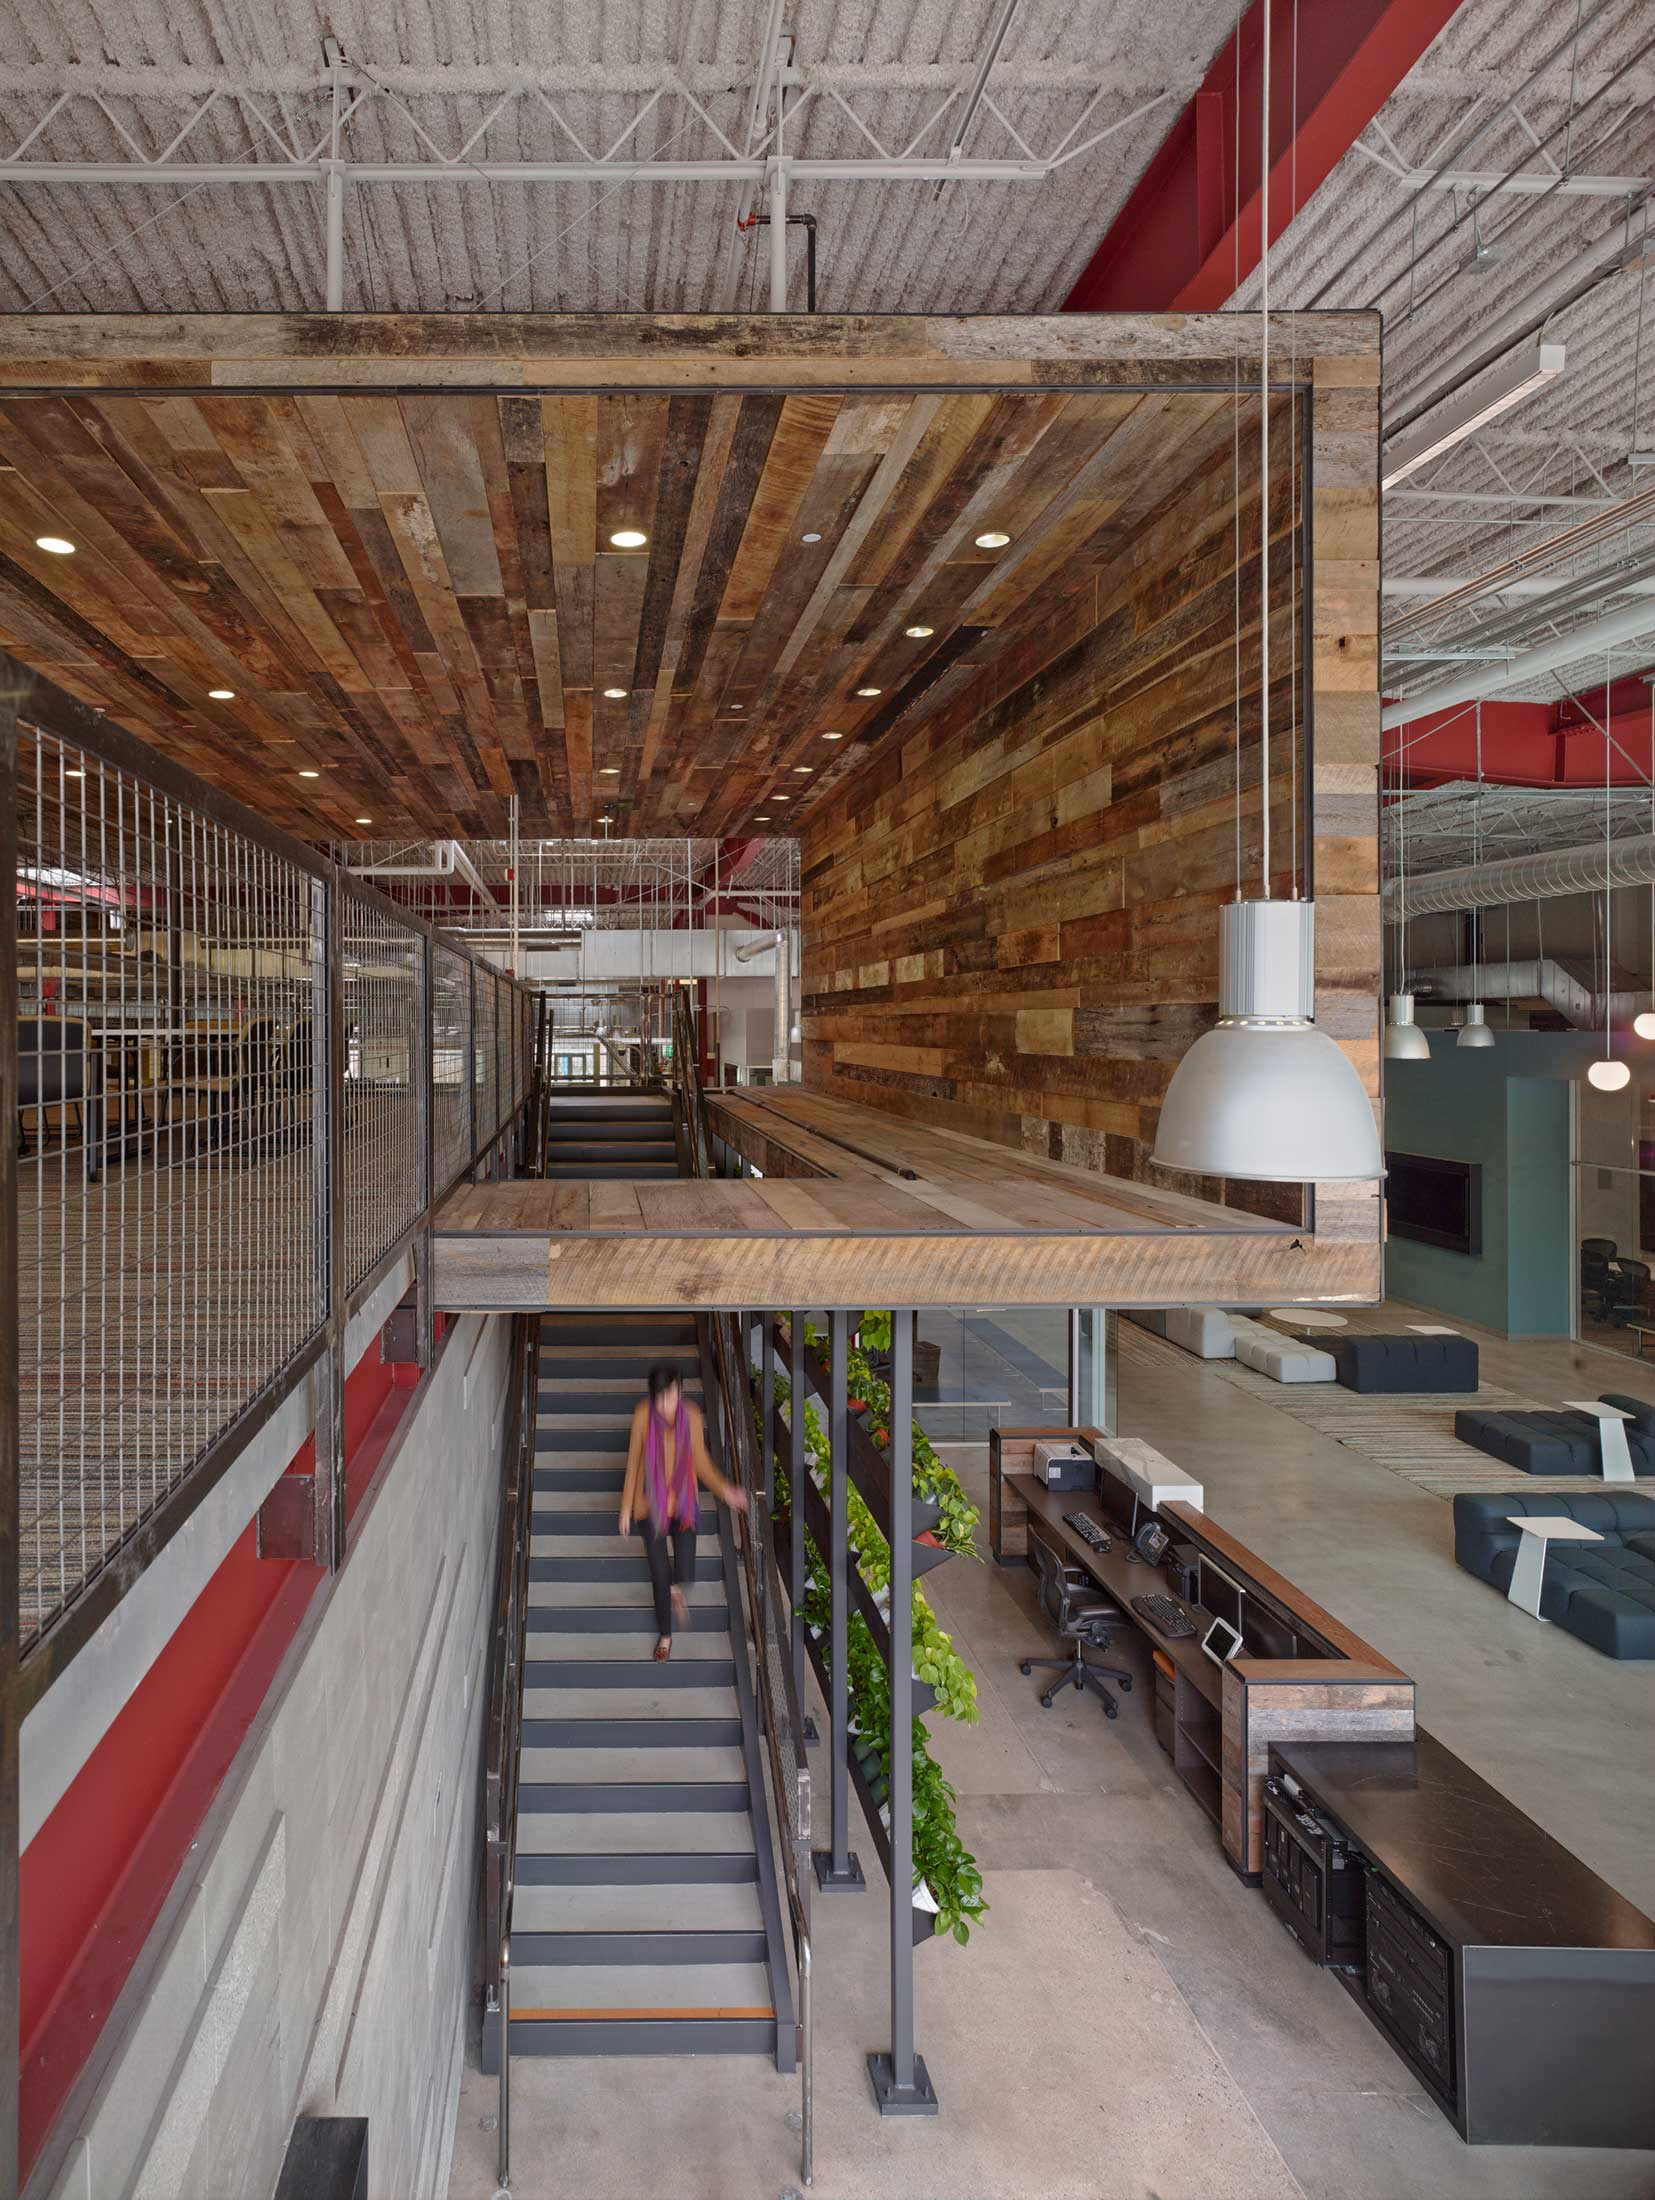 modern-architecture-commercial-interior-adaptive-reuse-workspace-california-shubindonaldson-team-one-usa-03